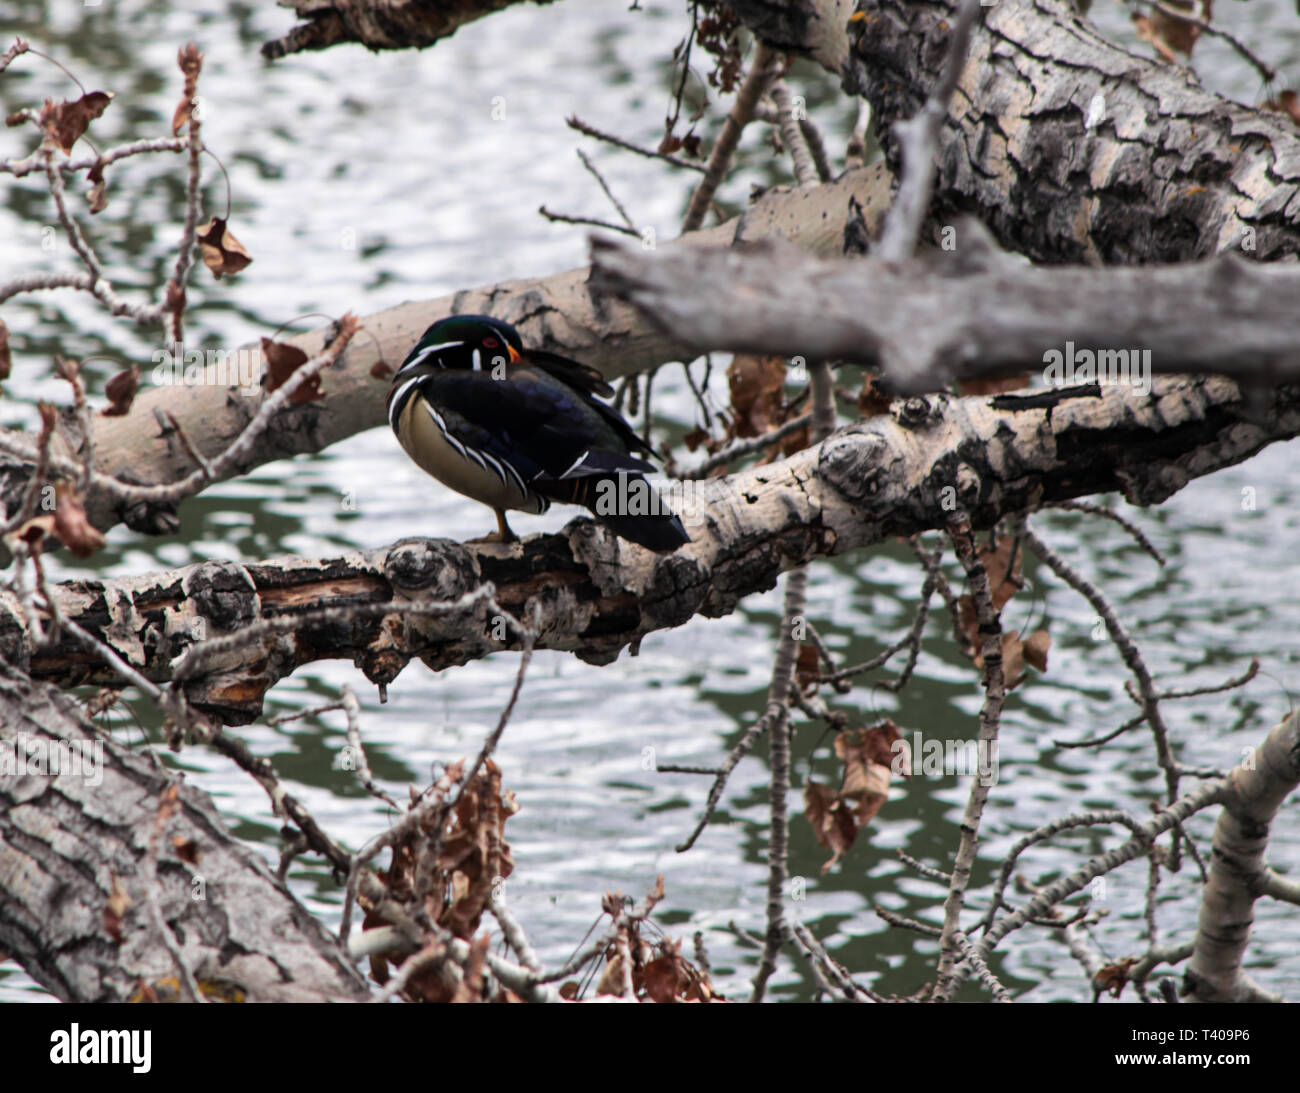 Wood duck on a tree limb. - Stock Image